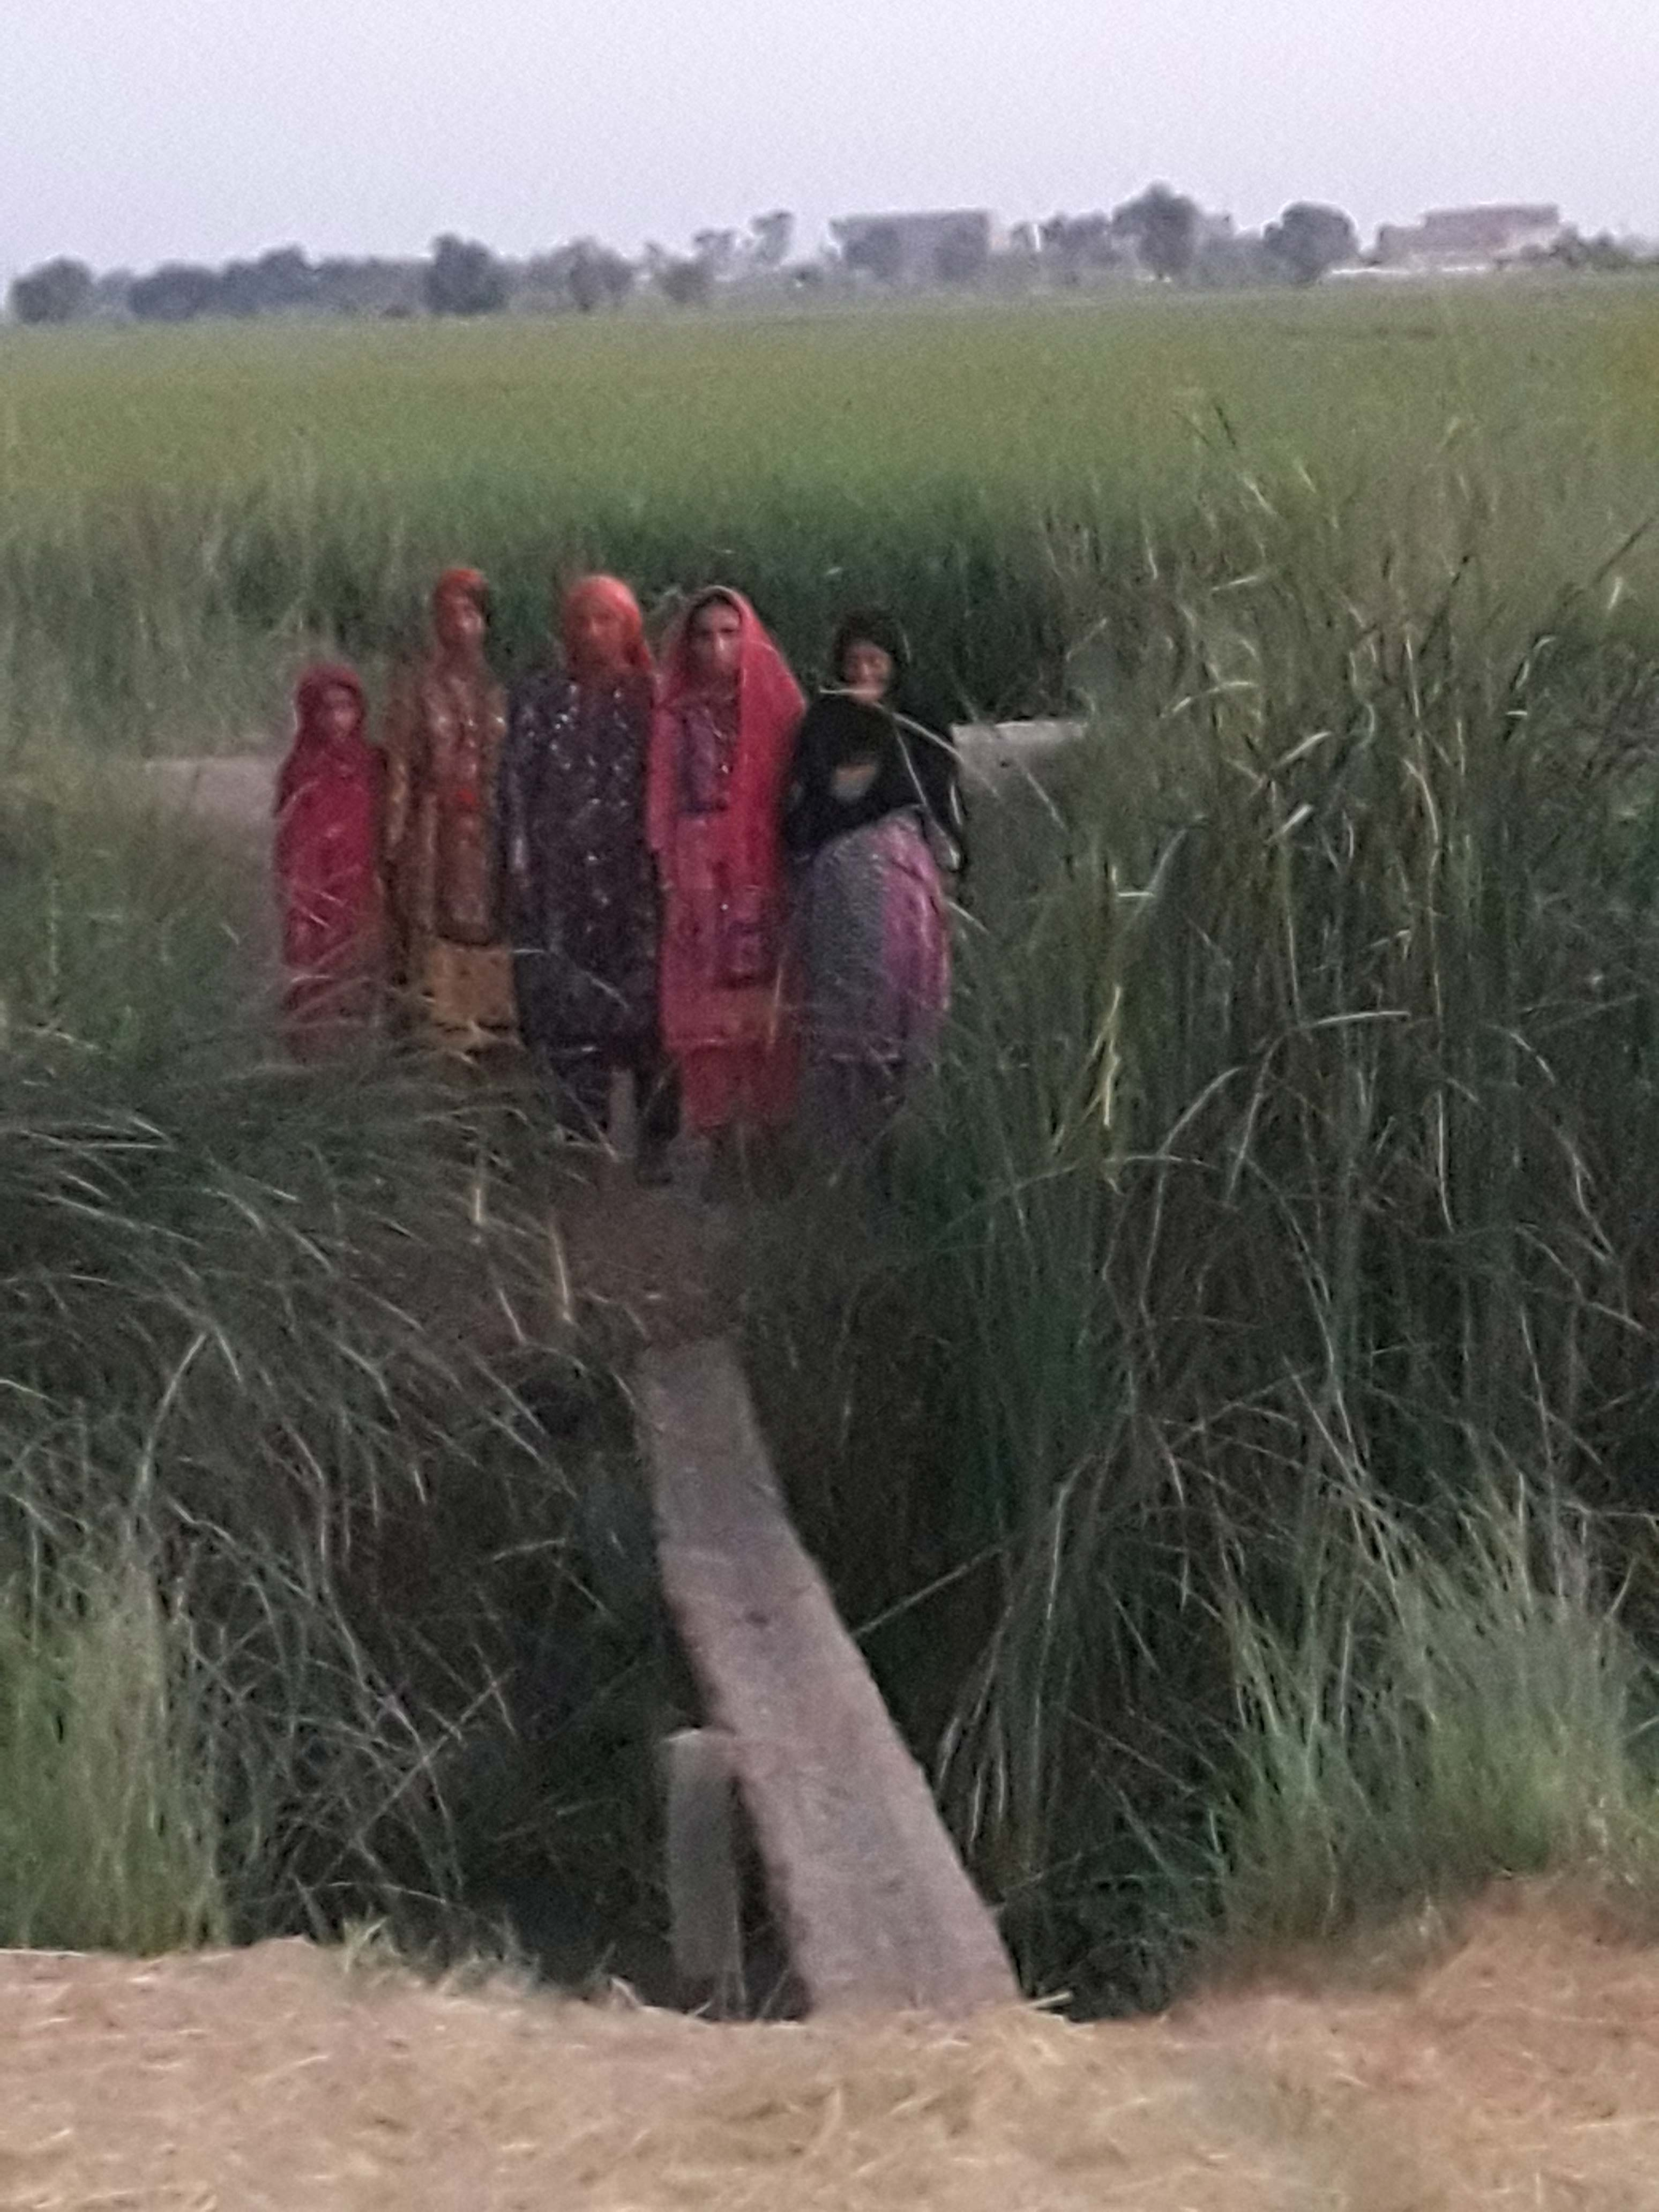 The women of Bhand Village must cross this rickety bridge to get from their homes to the road.